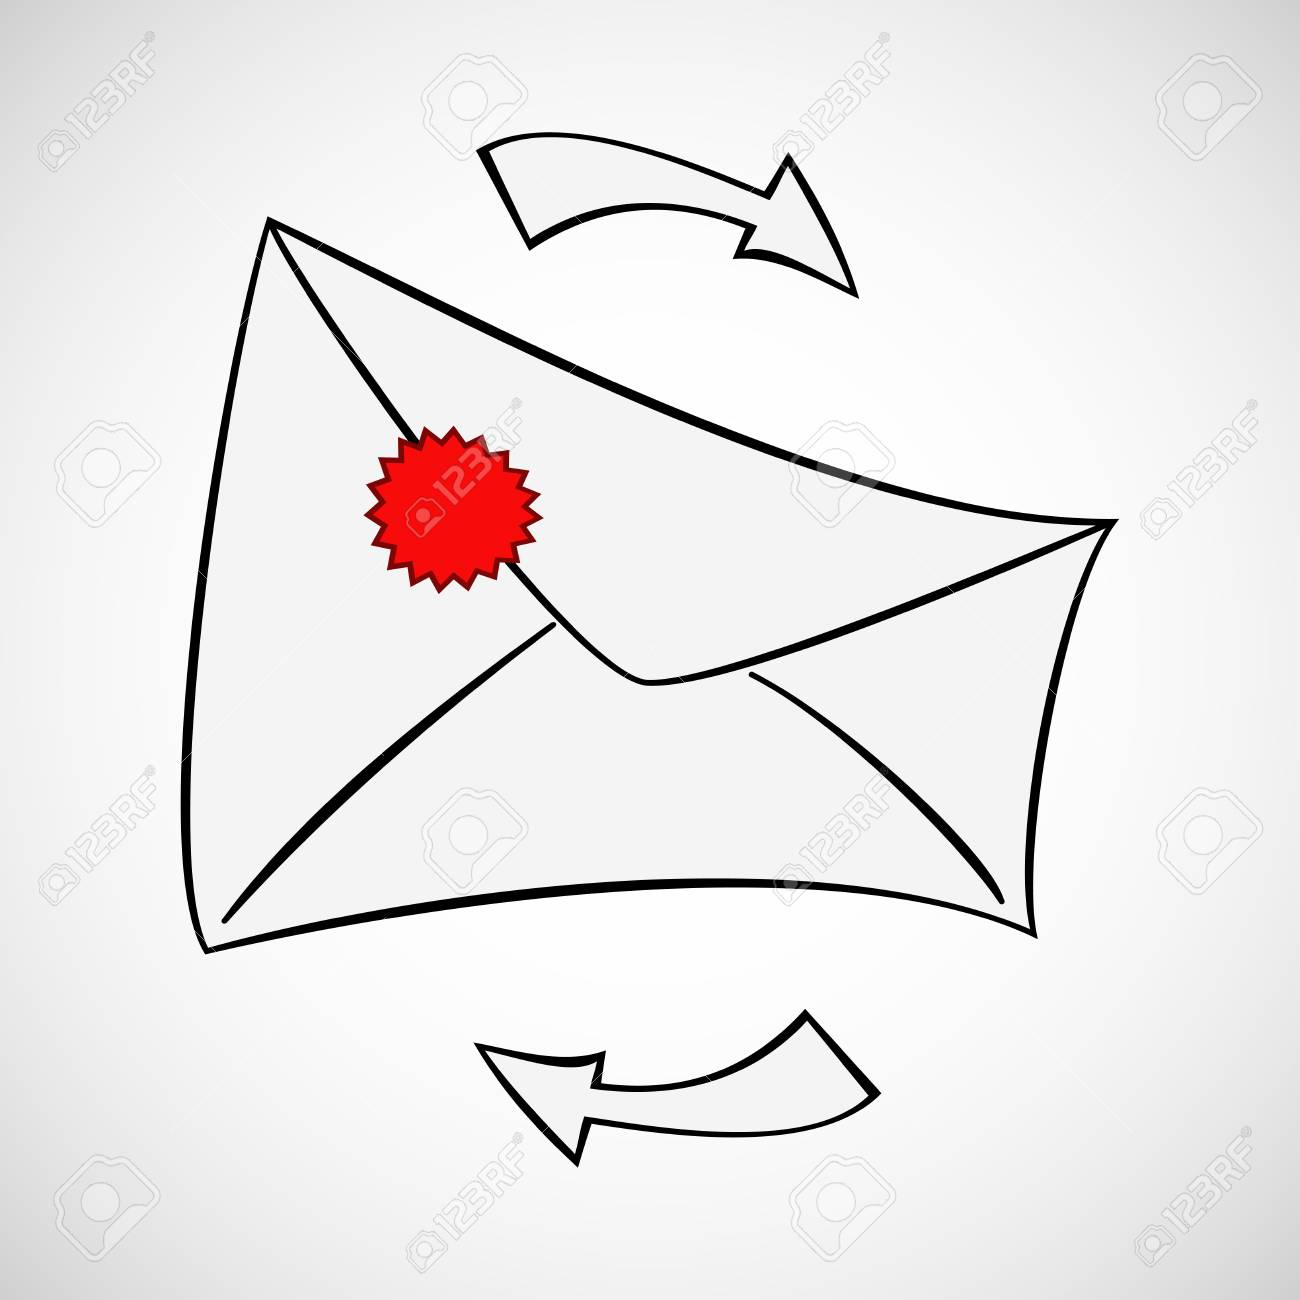 Envelope background Stock Vector - 17703000